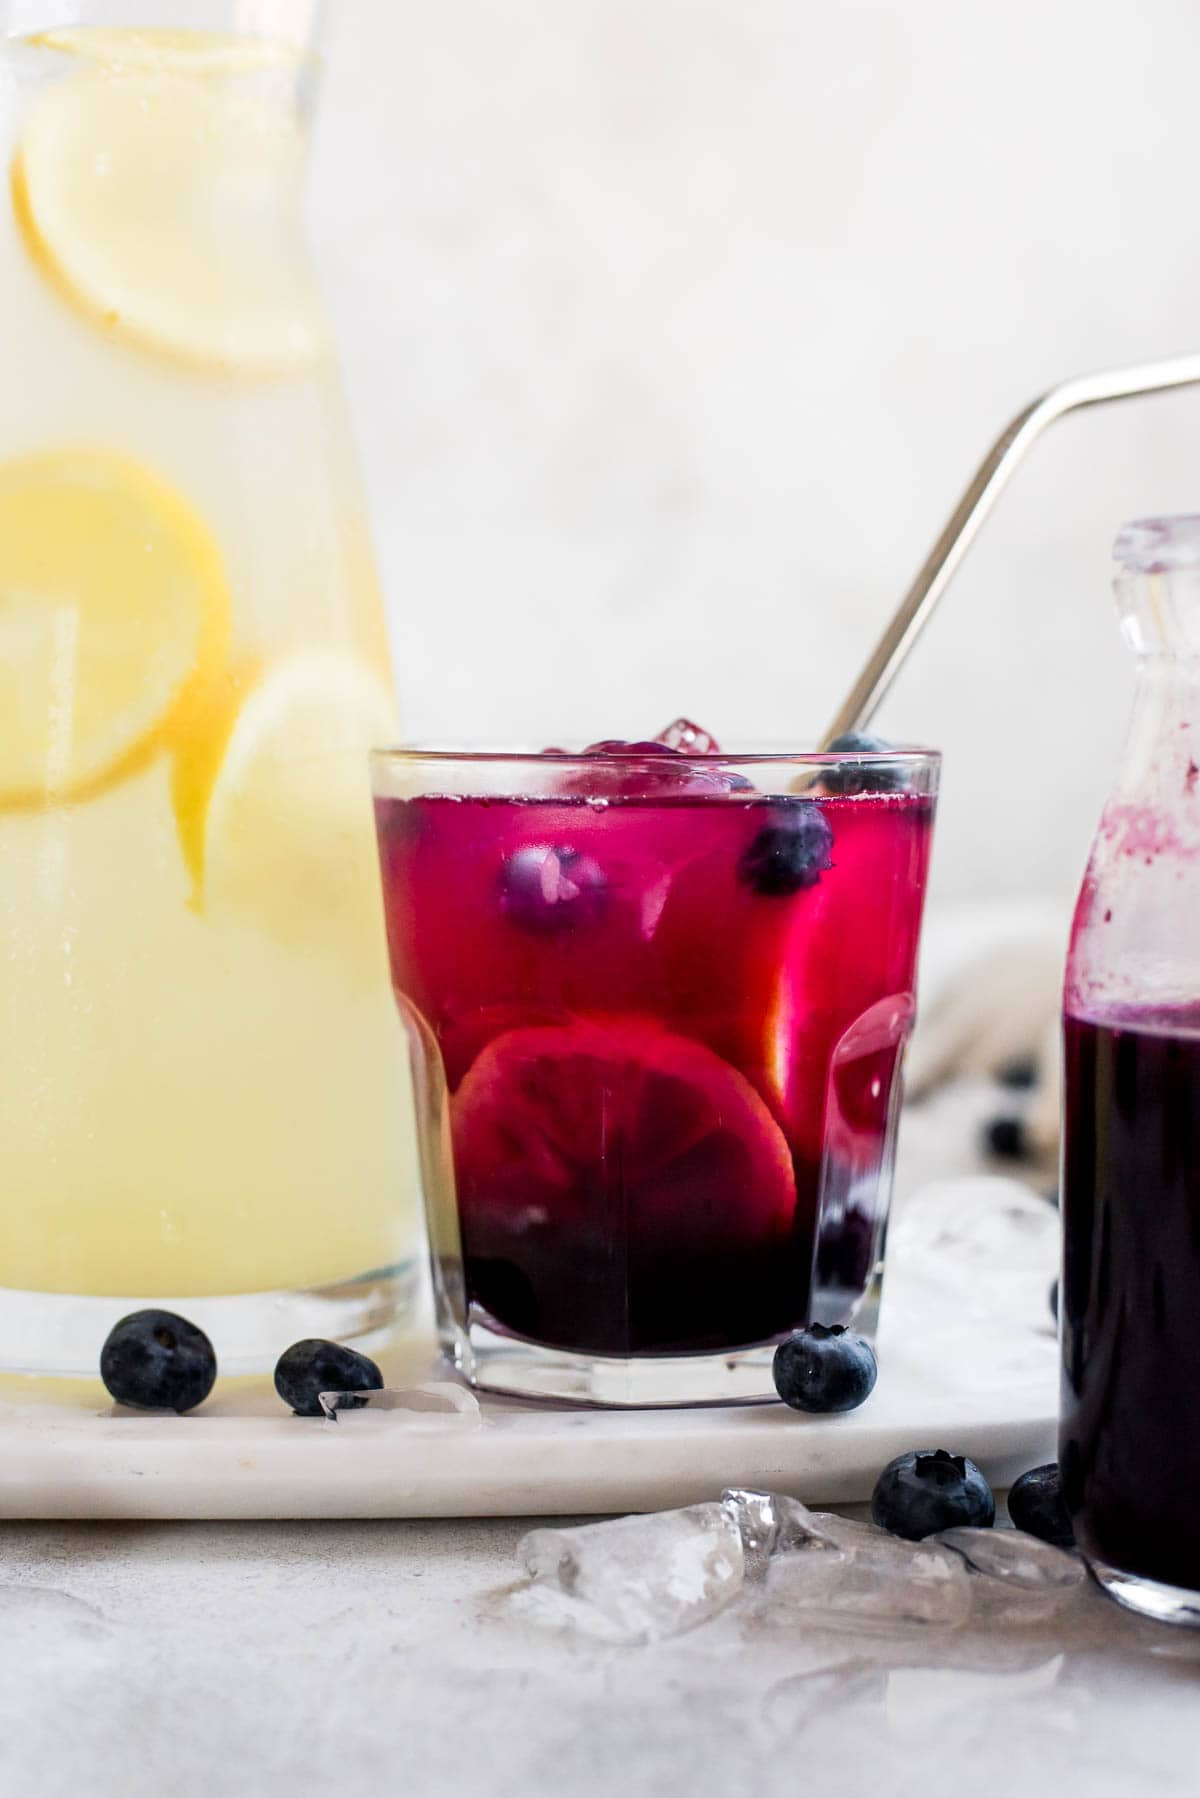 lemonade with blueberry syrup on tray